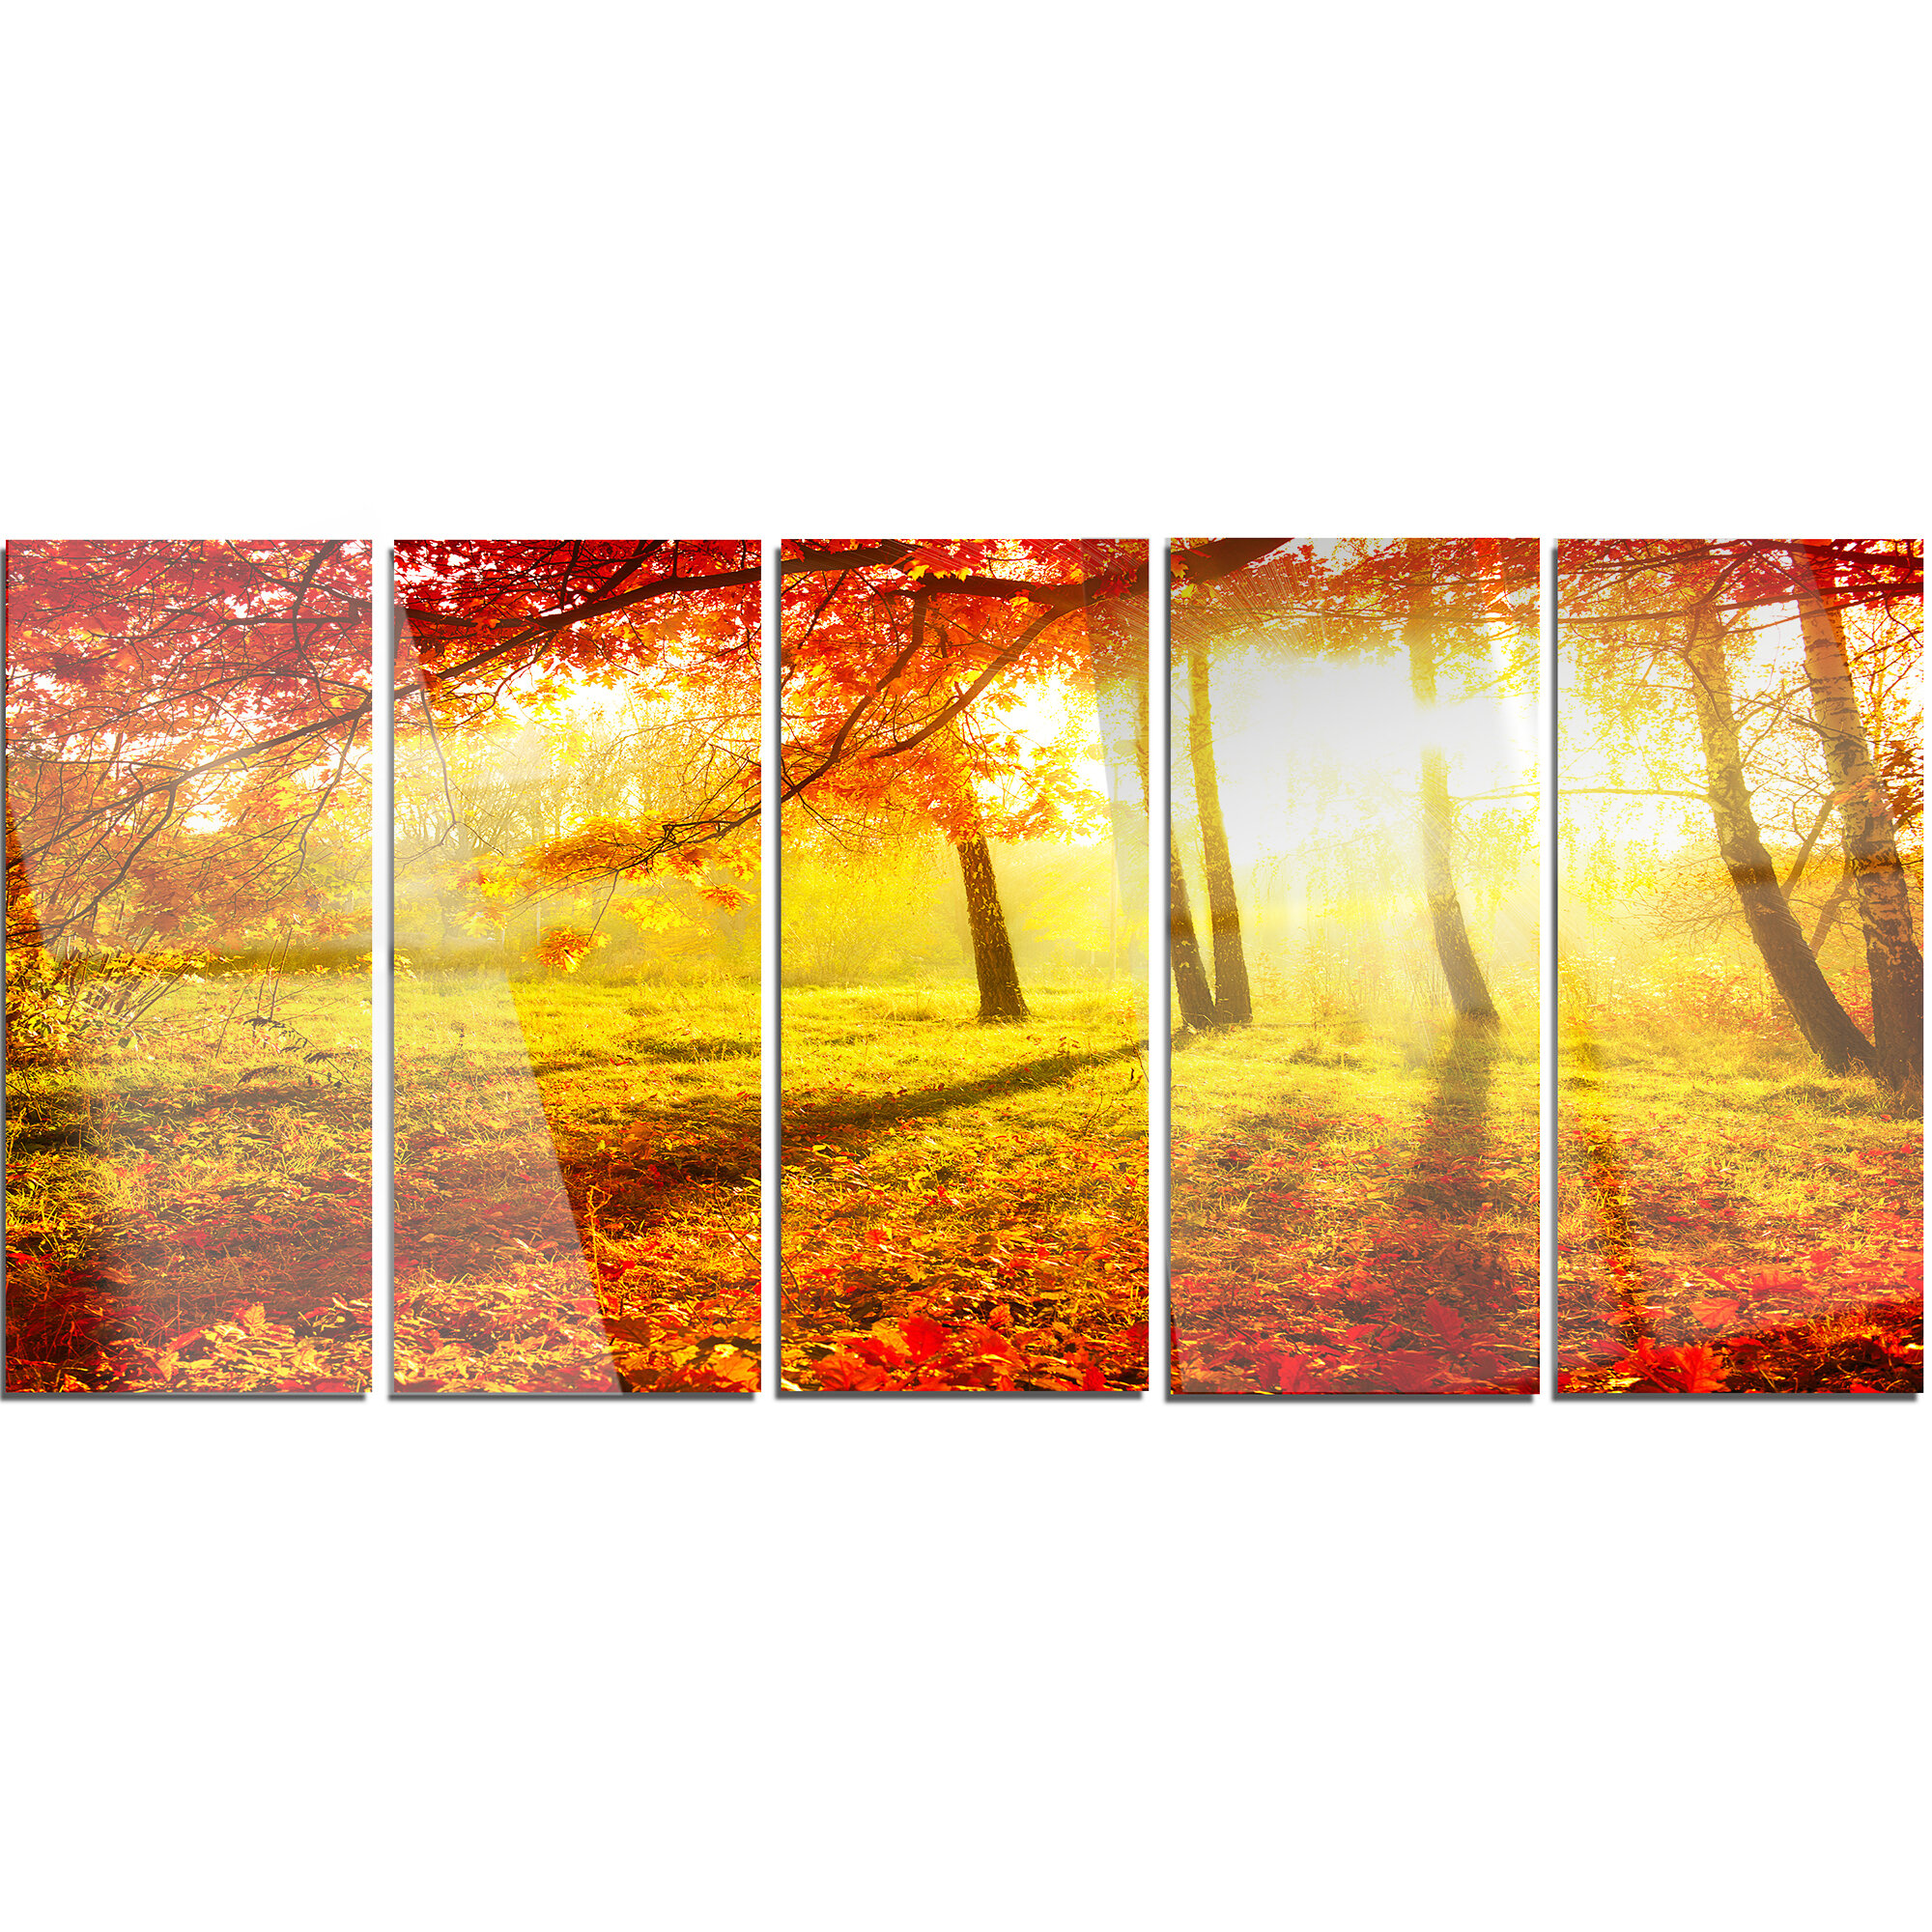 Designart Yellow Red Fall Trees And Leaves 5 Piece Photographic Print On Metal Set Wayfair